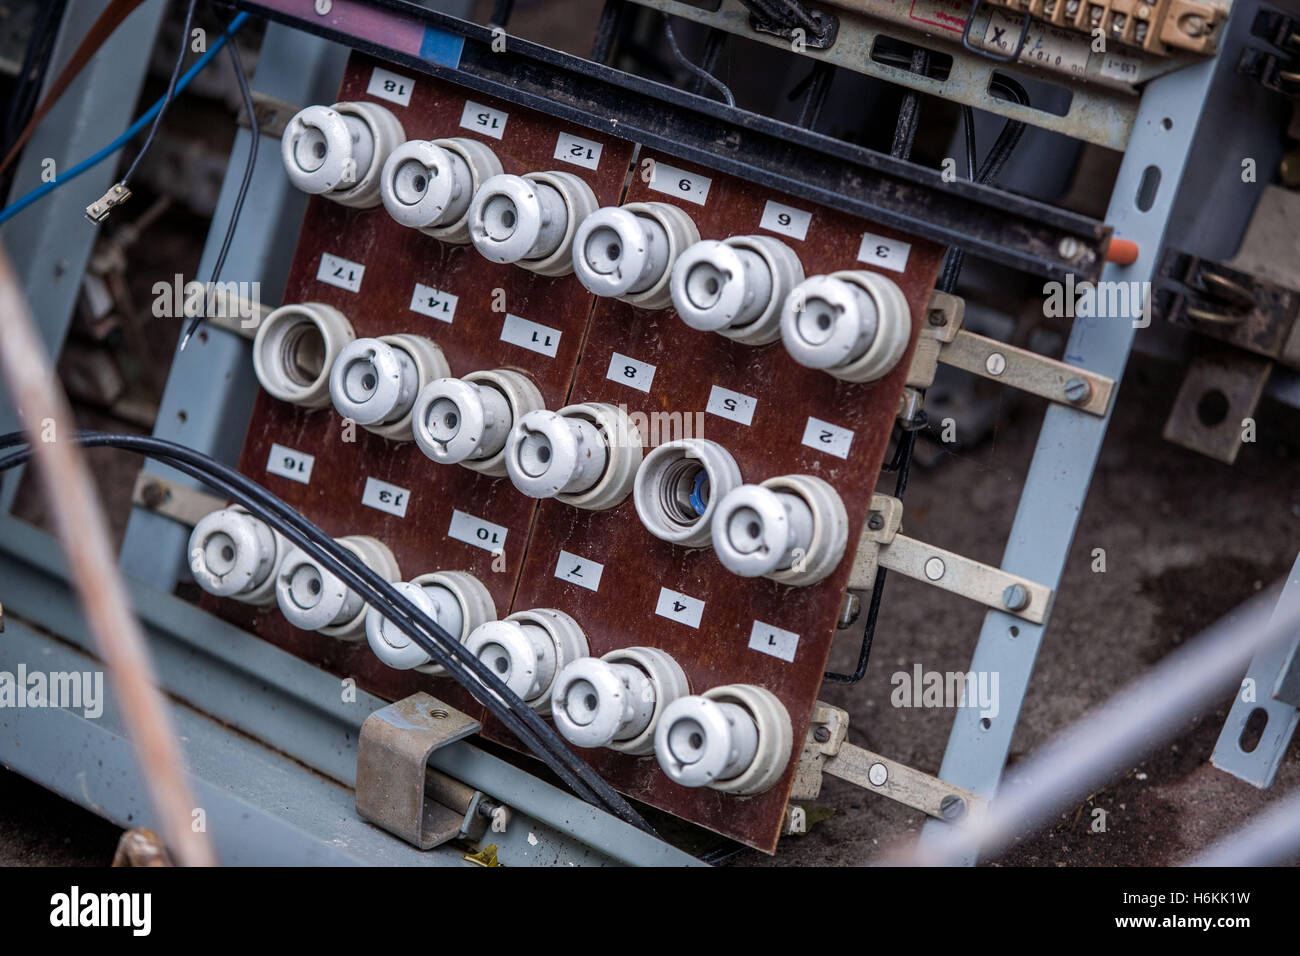 main fuse stock photos & main fuse stock images - alamy old apartment fuse box